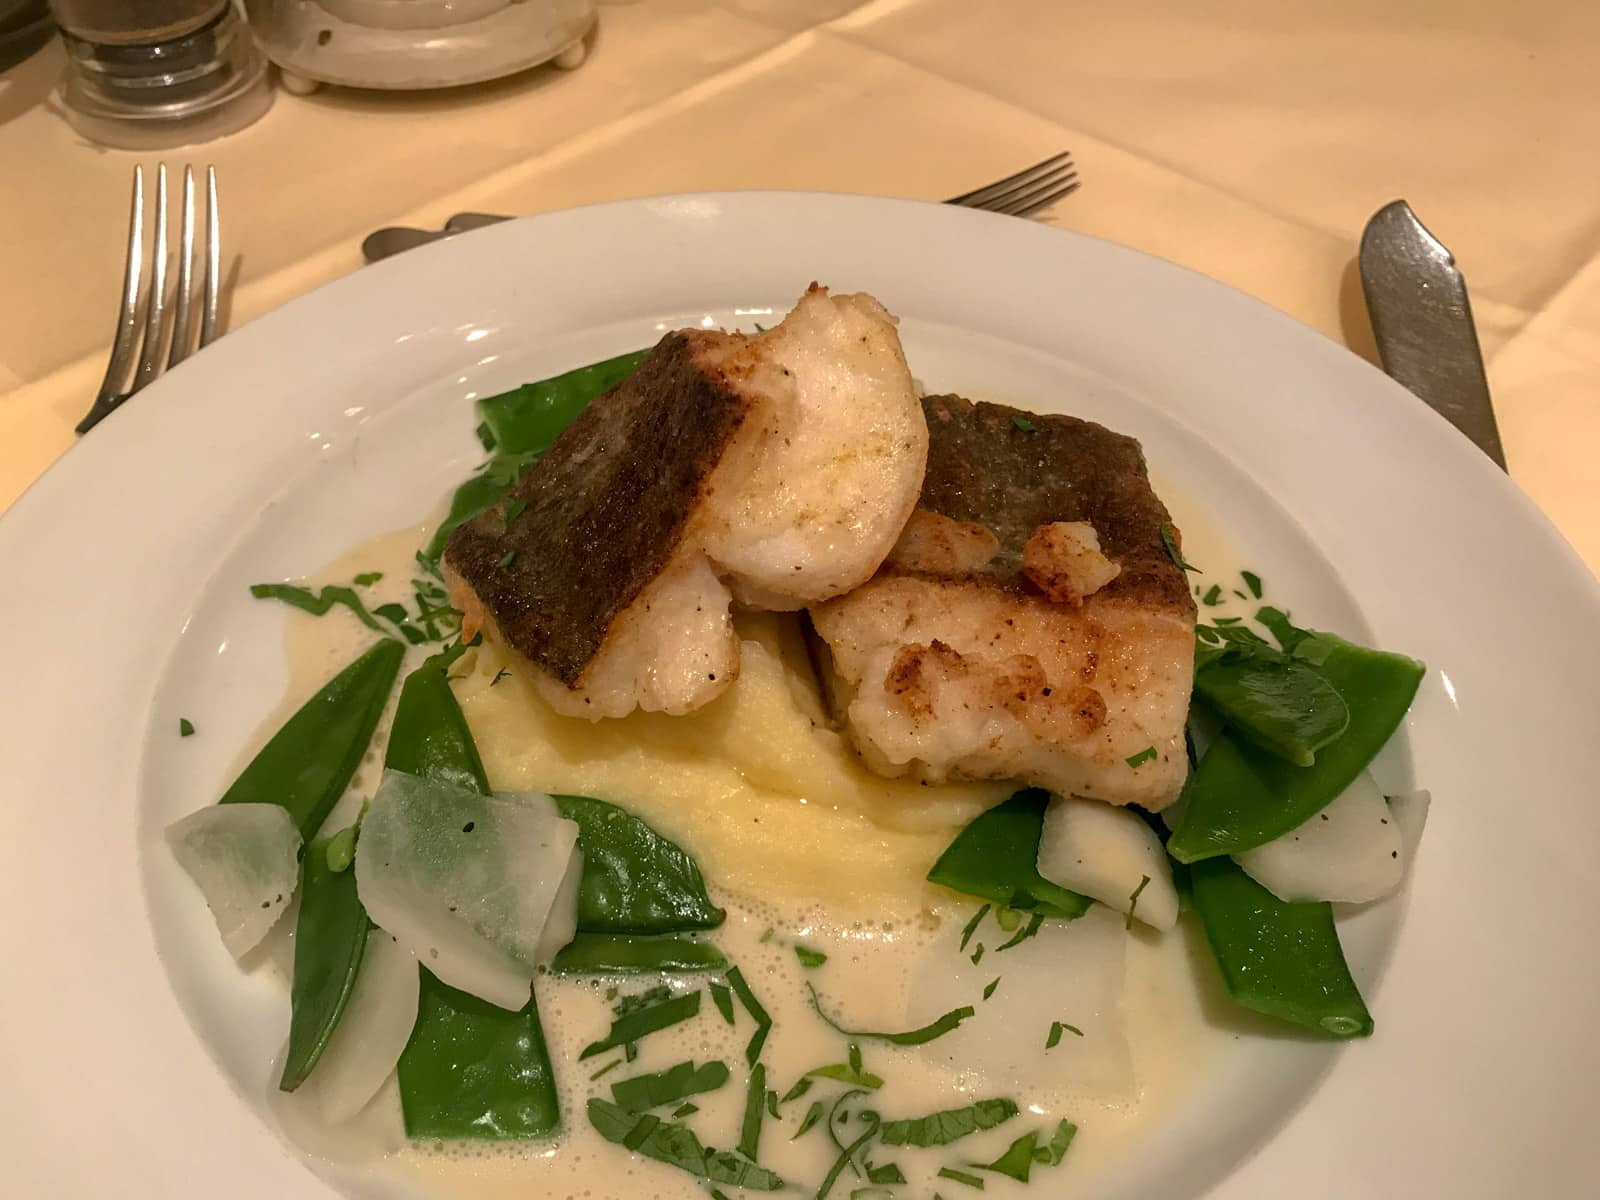 A round white plate with mashed potato, snow peas and fish served on it.